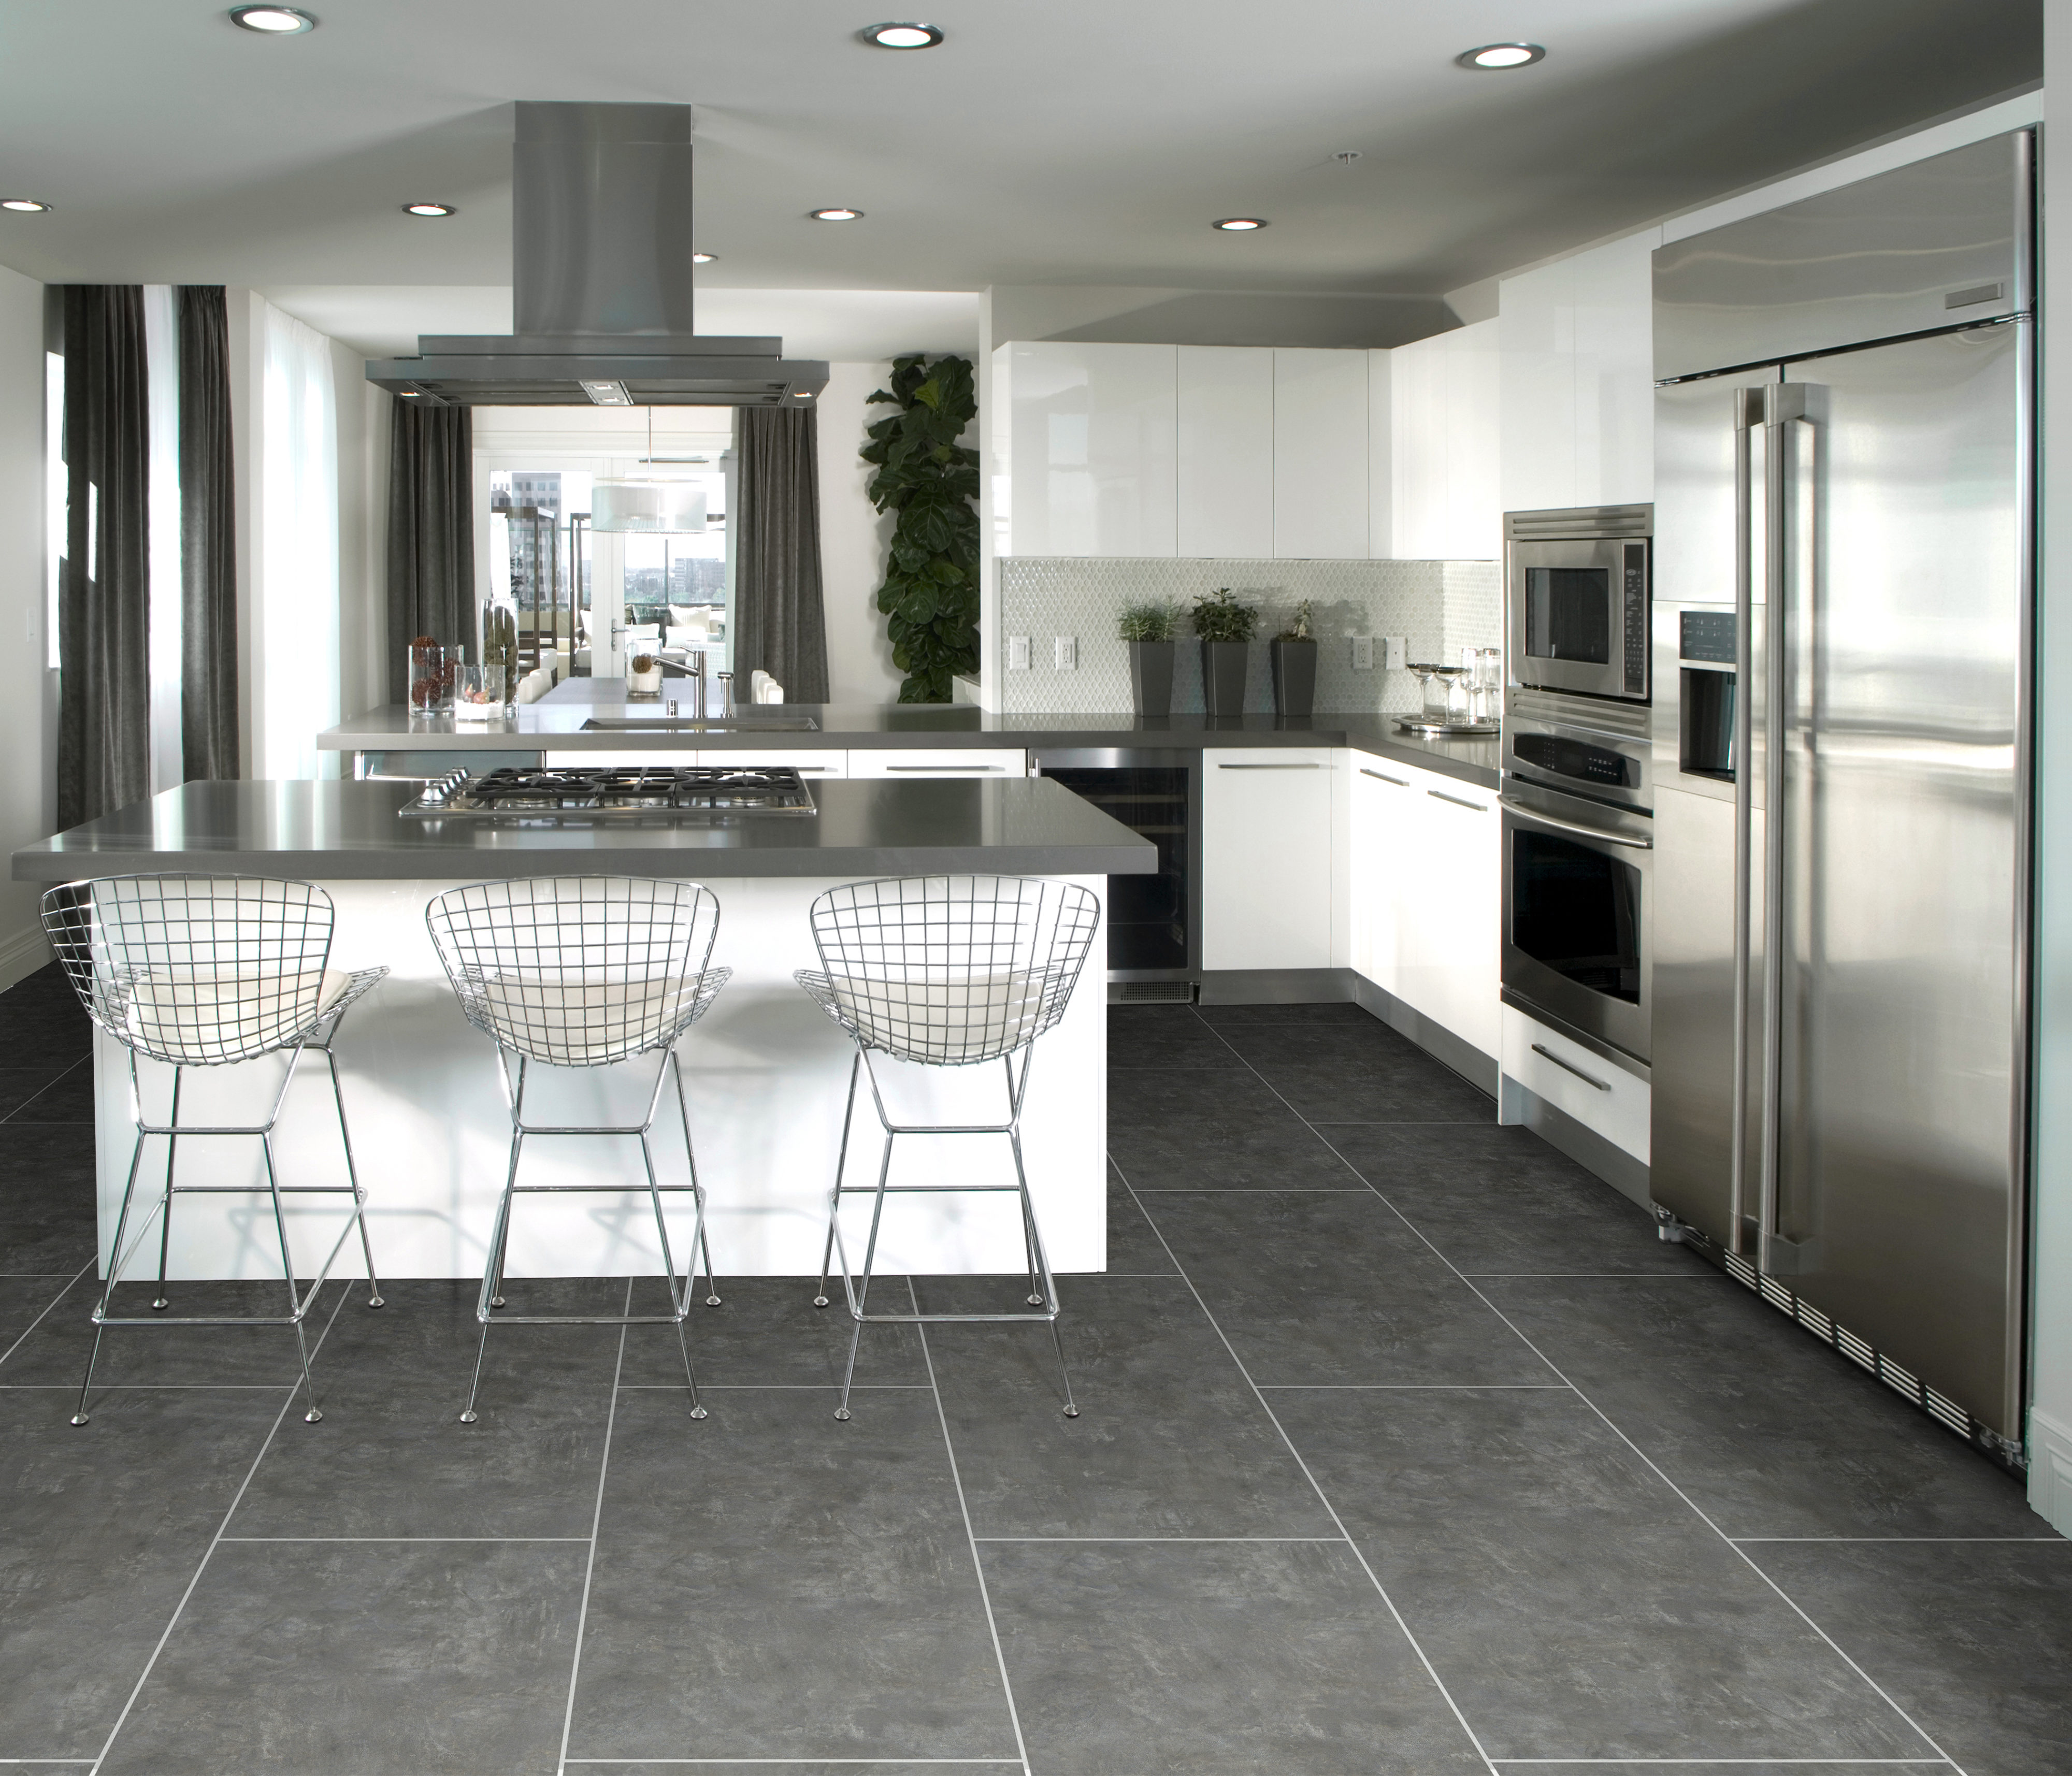 Tile floor is easy to clean and looks great. Call us today to get a customer flooring installation consultation and quote.